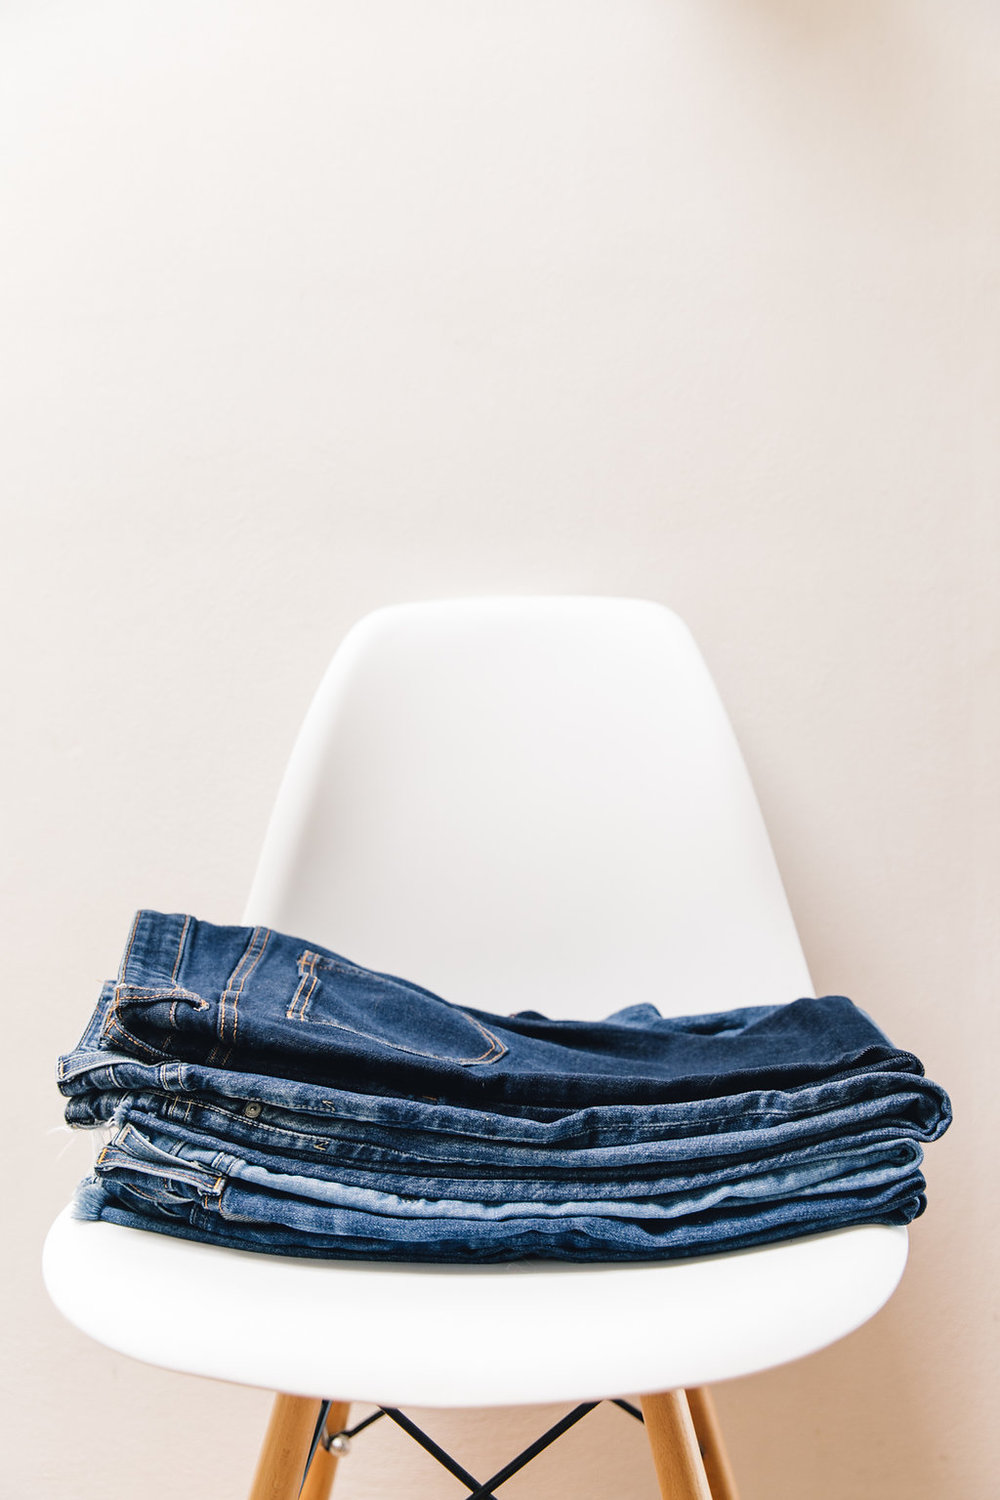 fc_june17_denim-stack_2.jpg